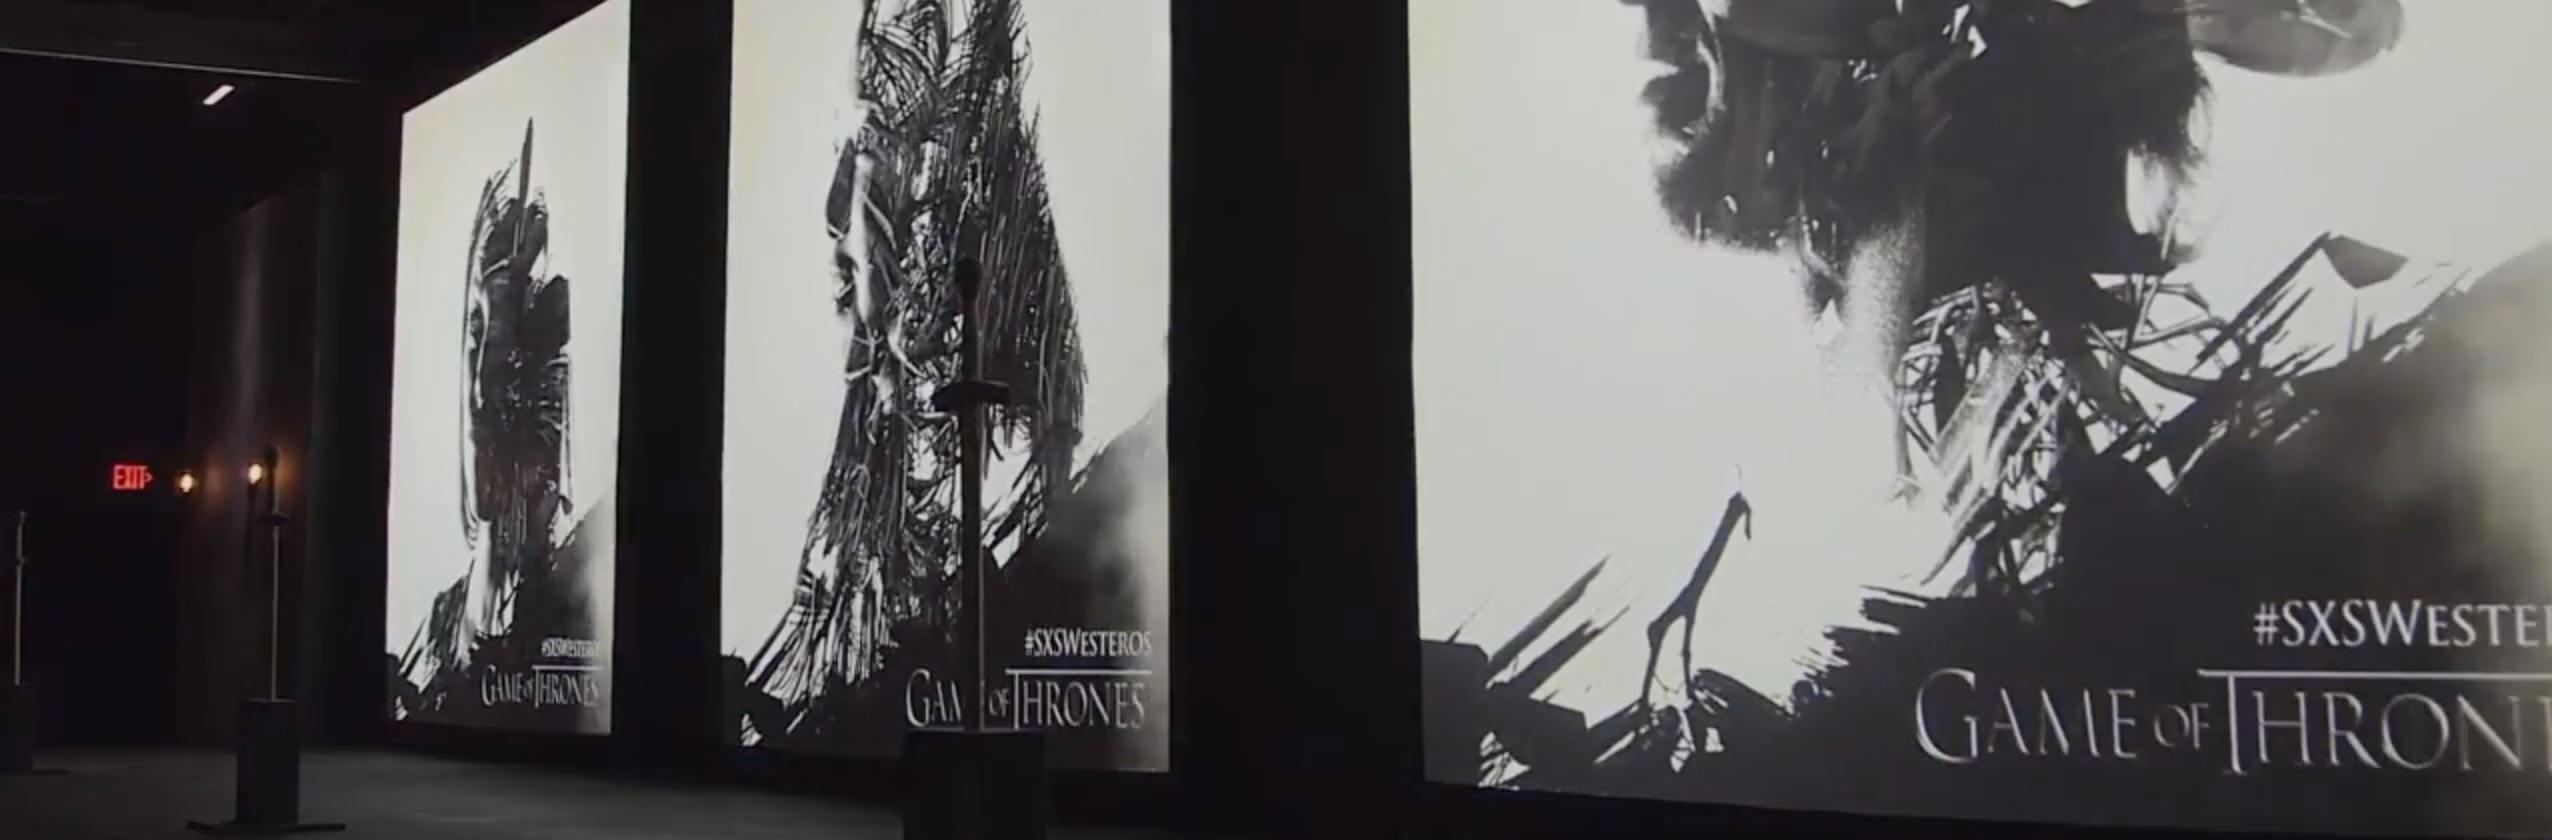 Game of Throne Event Projection Screens